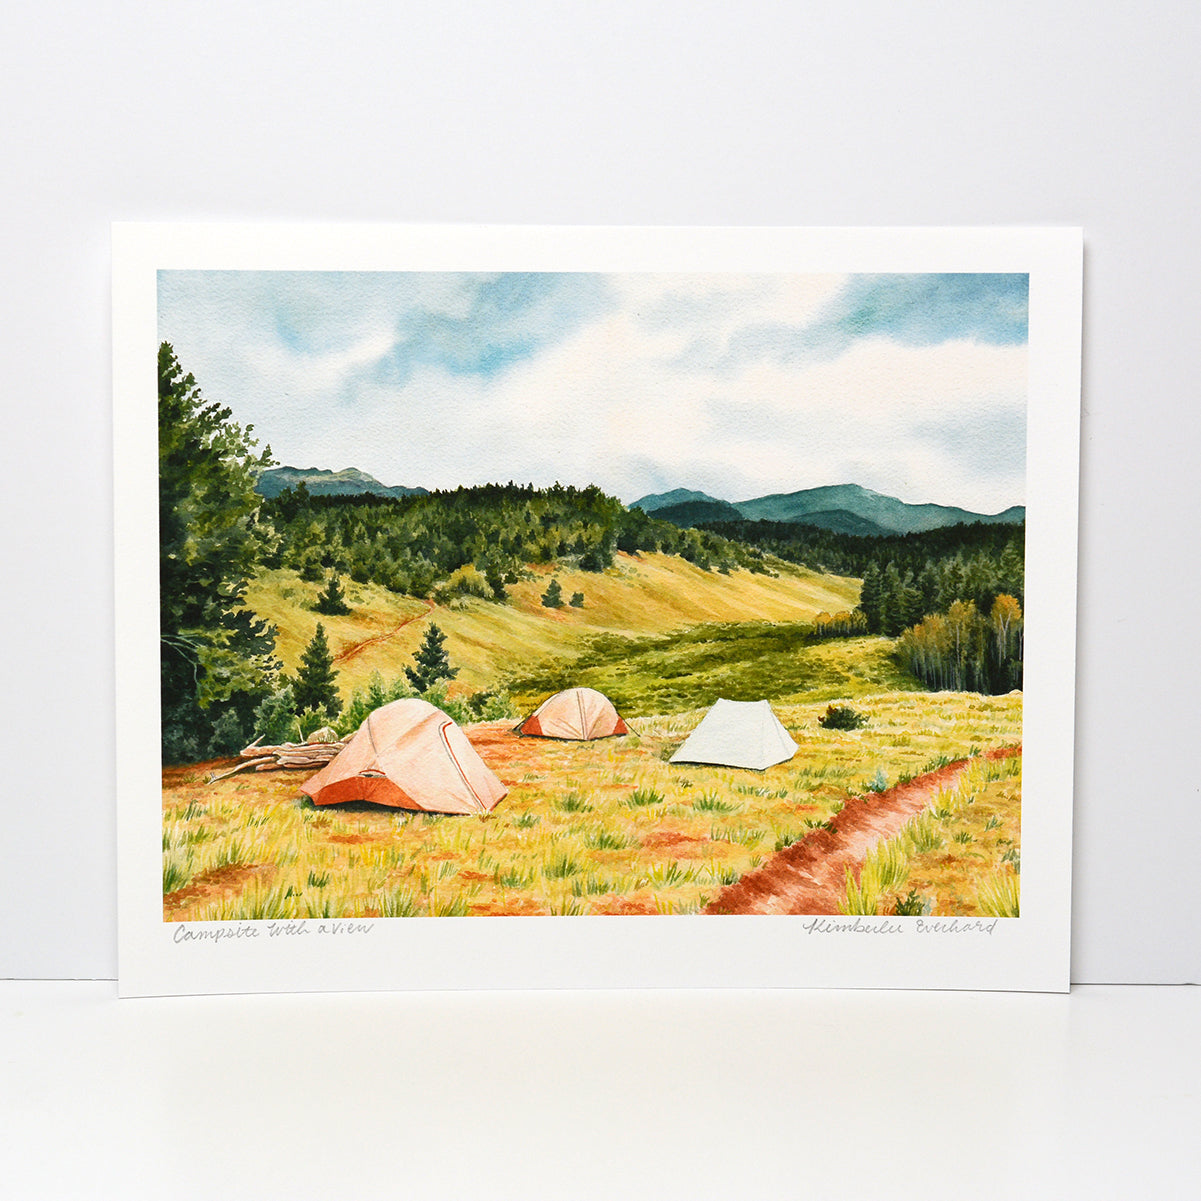 Campsite With A View - Fine Art Print - Kim Everhard Art